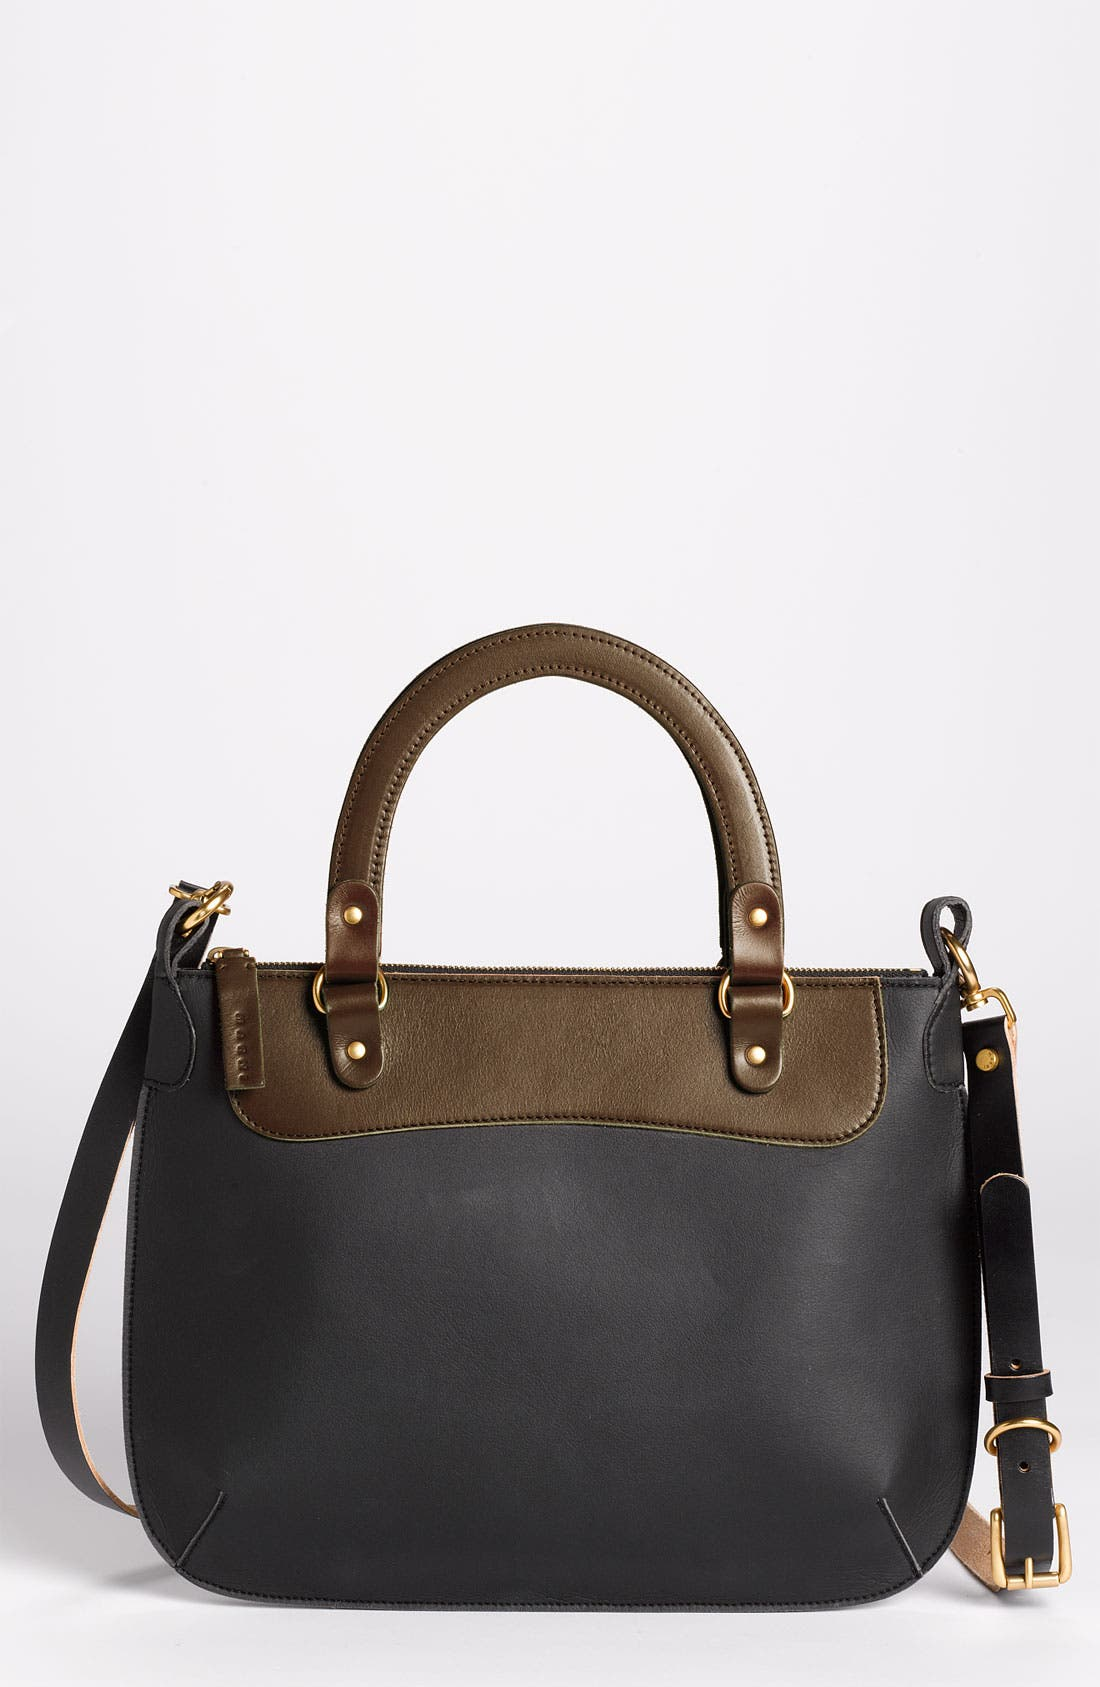 Main Image - Marni 'Large' Leather Crossbody Bag